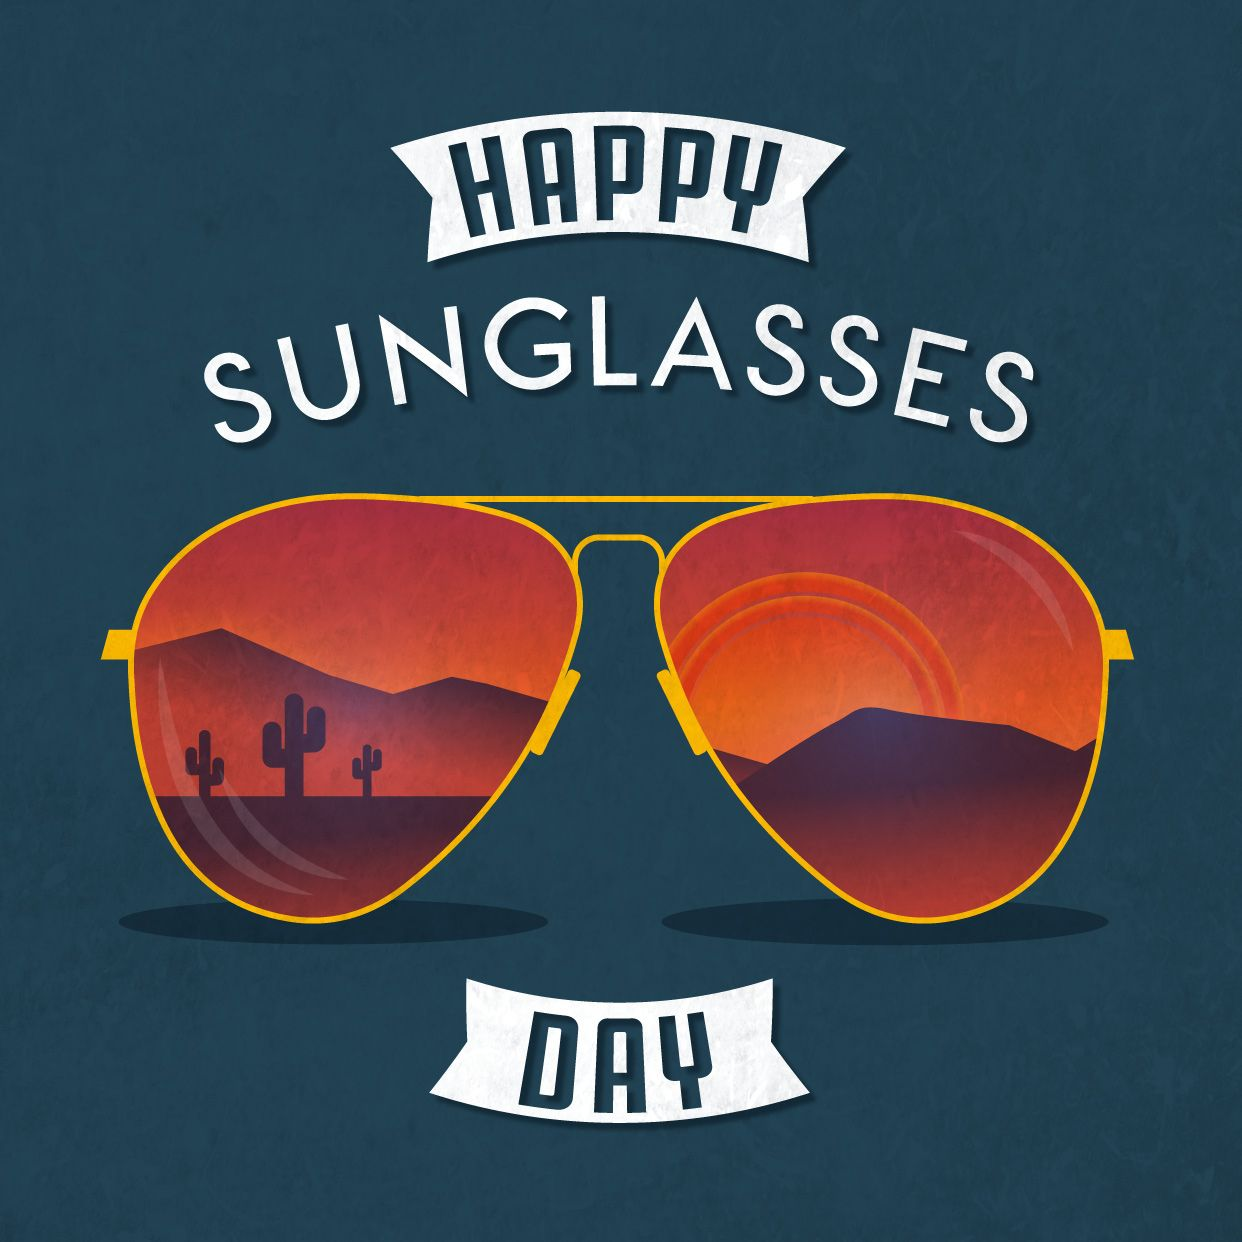 1109781b0b1ae HAPPY SUNGLASSES DAY! June 27 is National Sunglasses Day